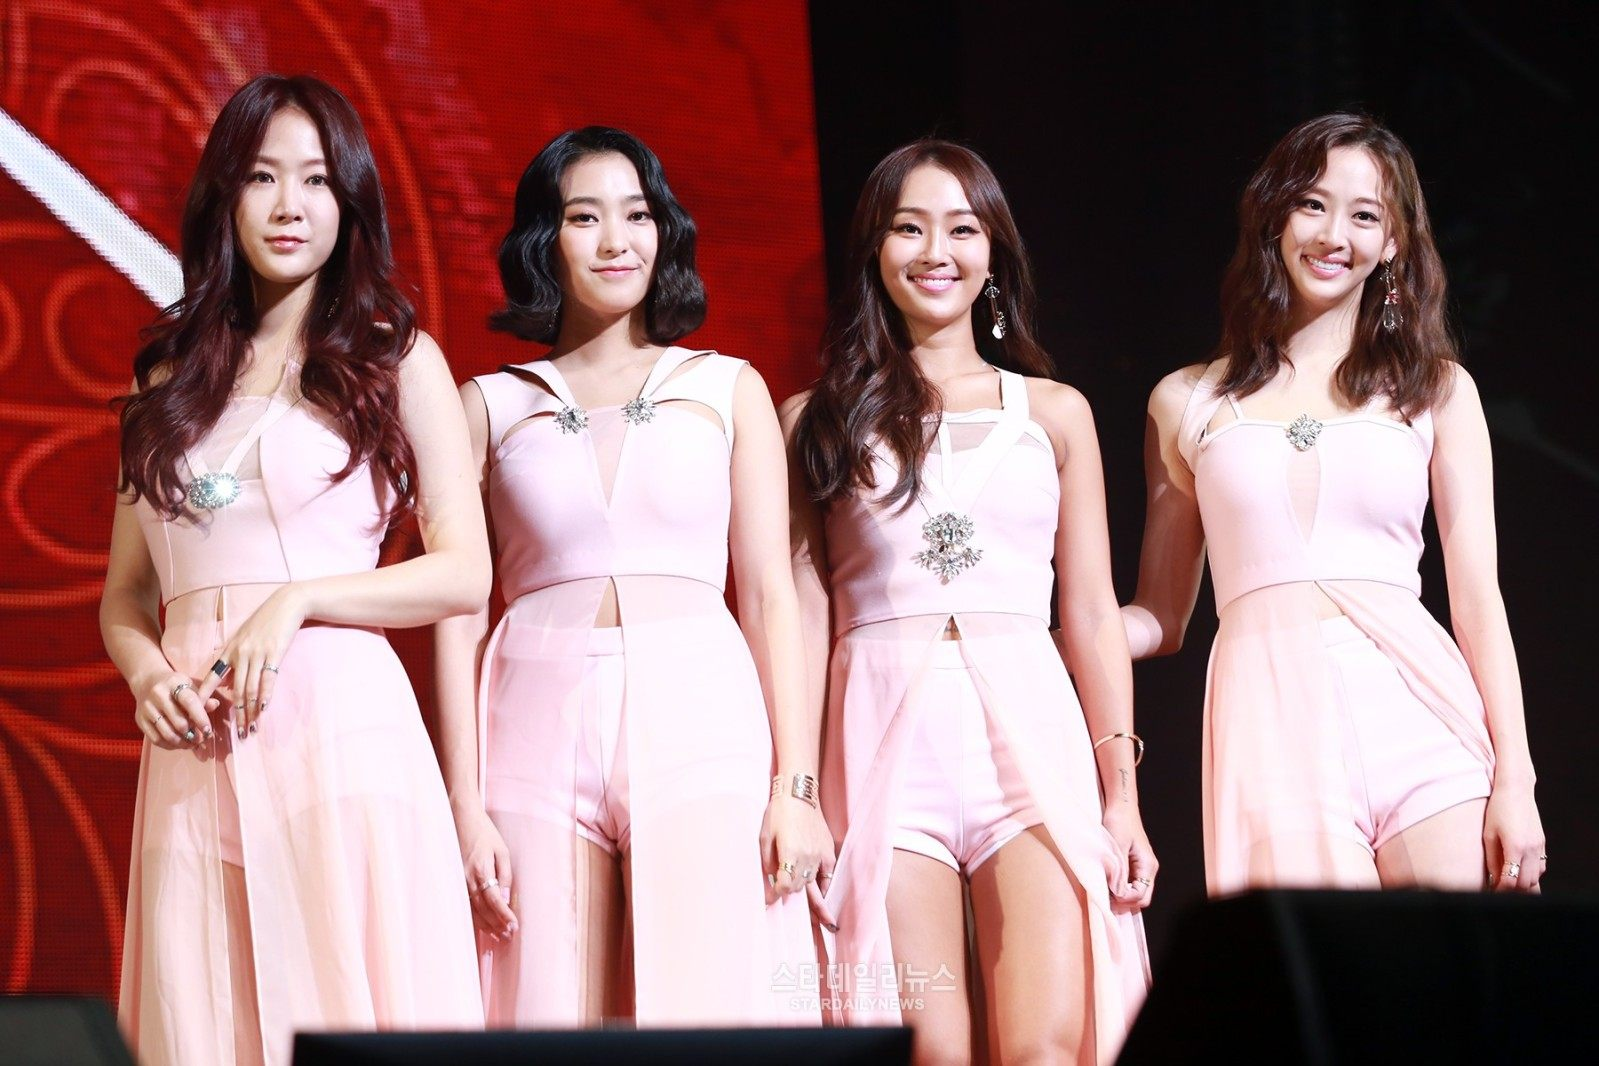 [★BREAKING] Starship Entertainment confirms SISTAR officially disbanding